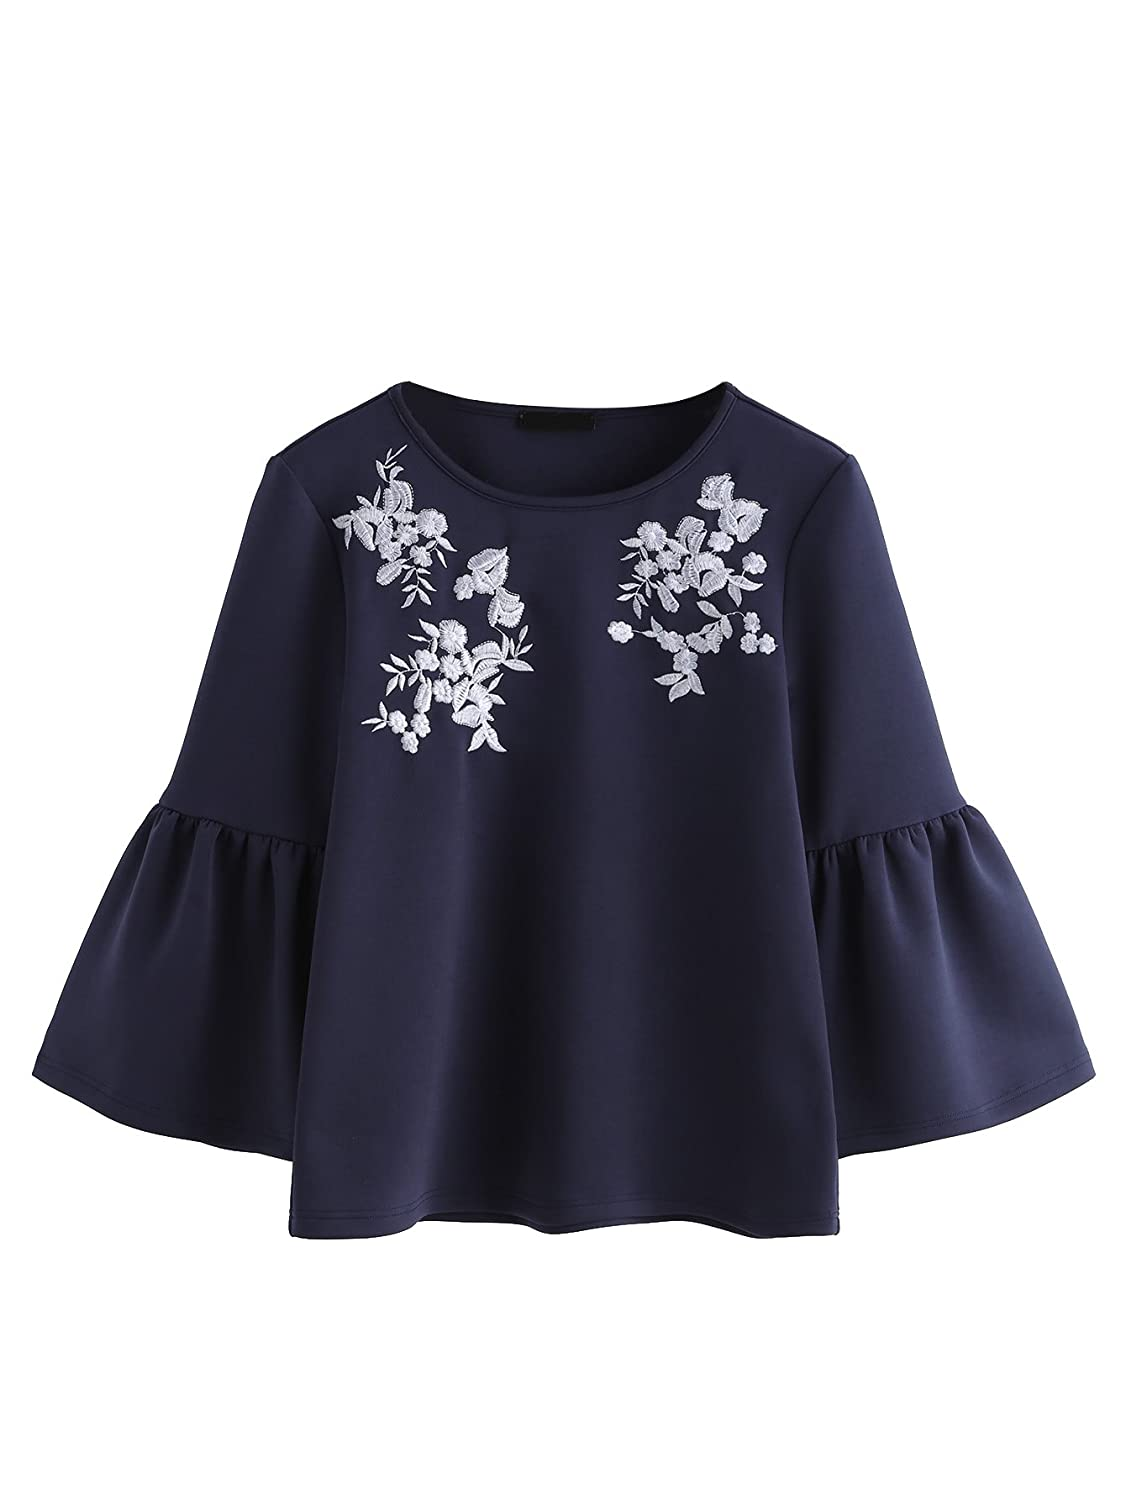 79895a70bfe309 Romwe Women's Cute Round Neck Embroidered Bell Sleeve Blouse Top at Amazon  Women's Clothing store: